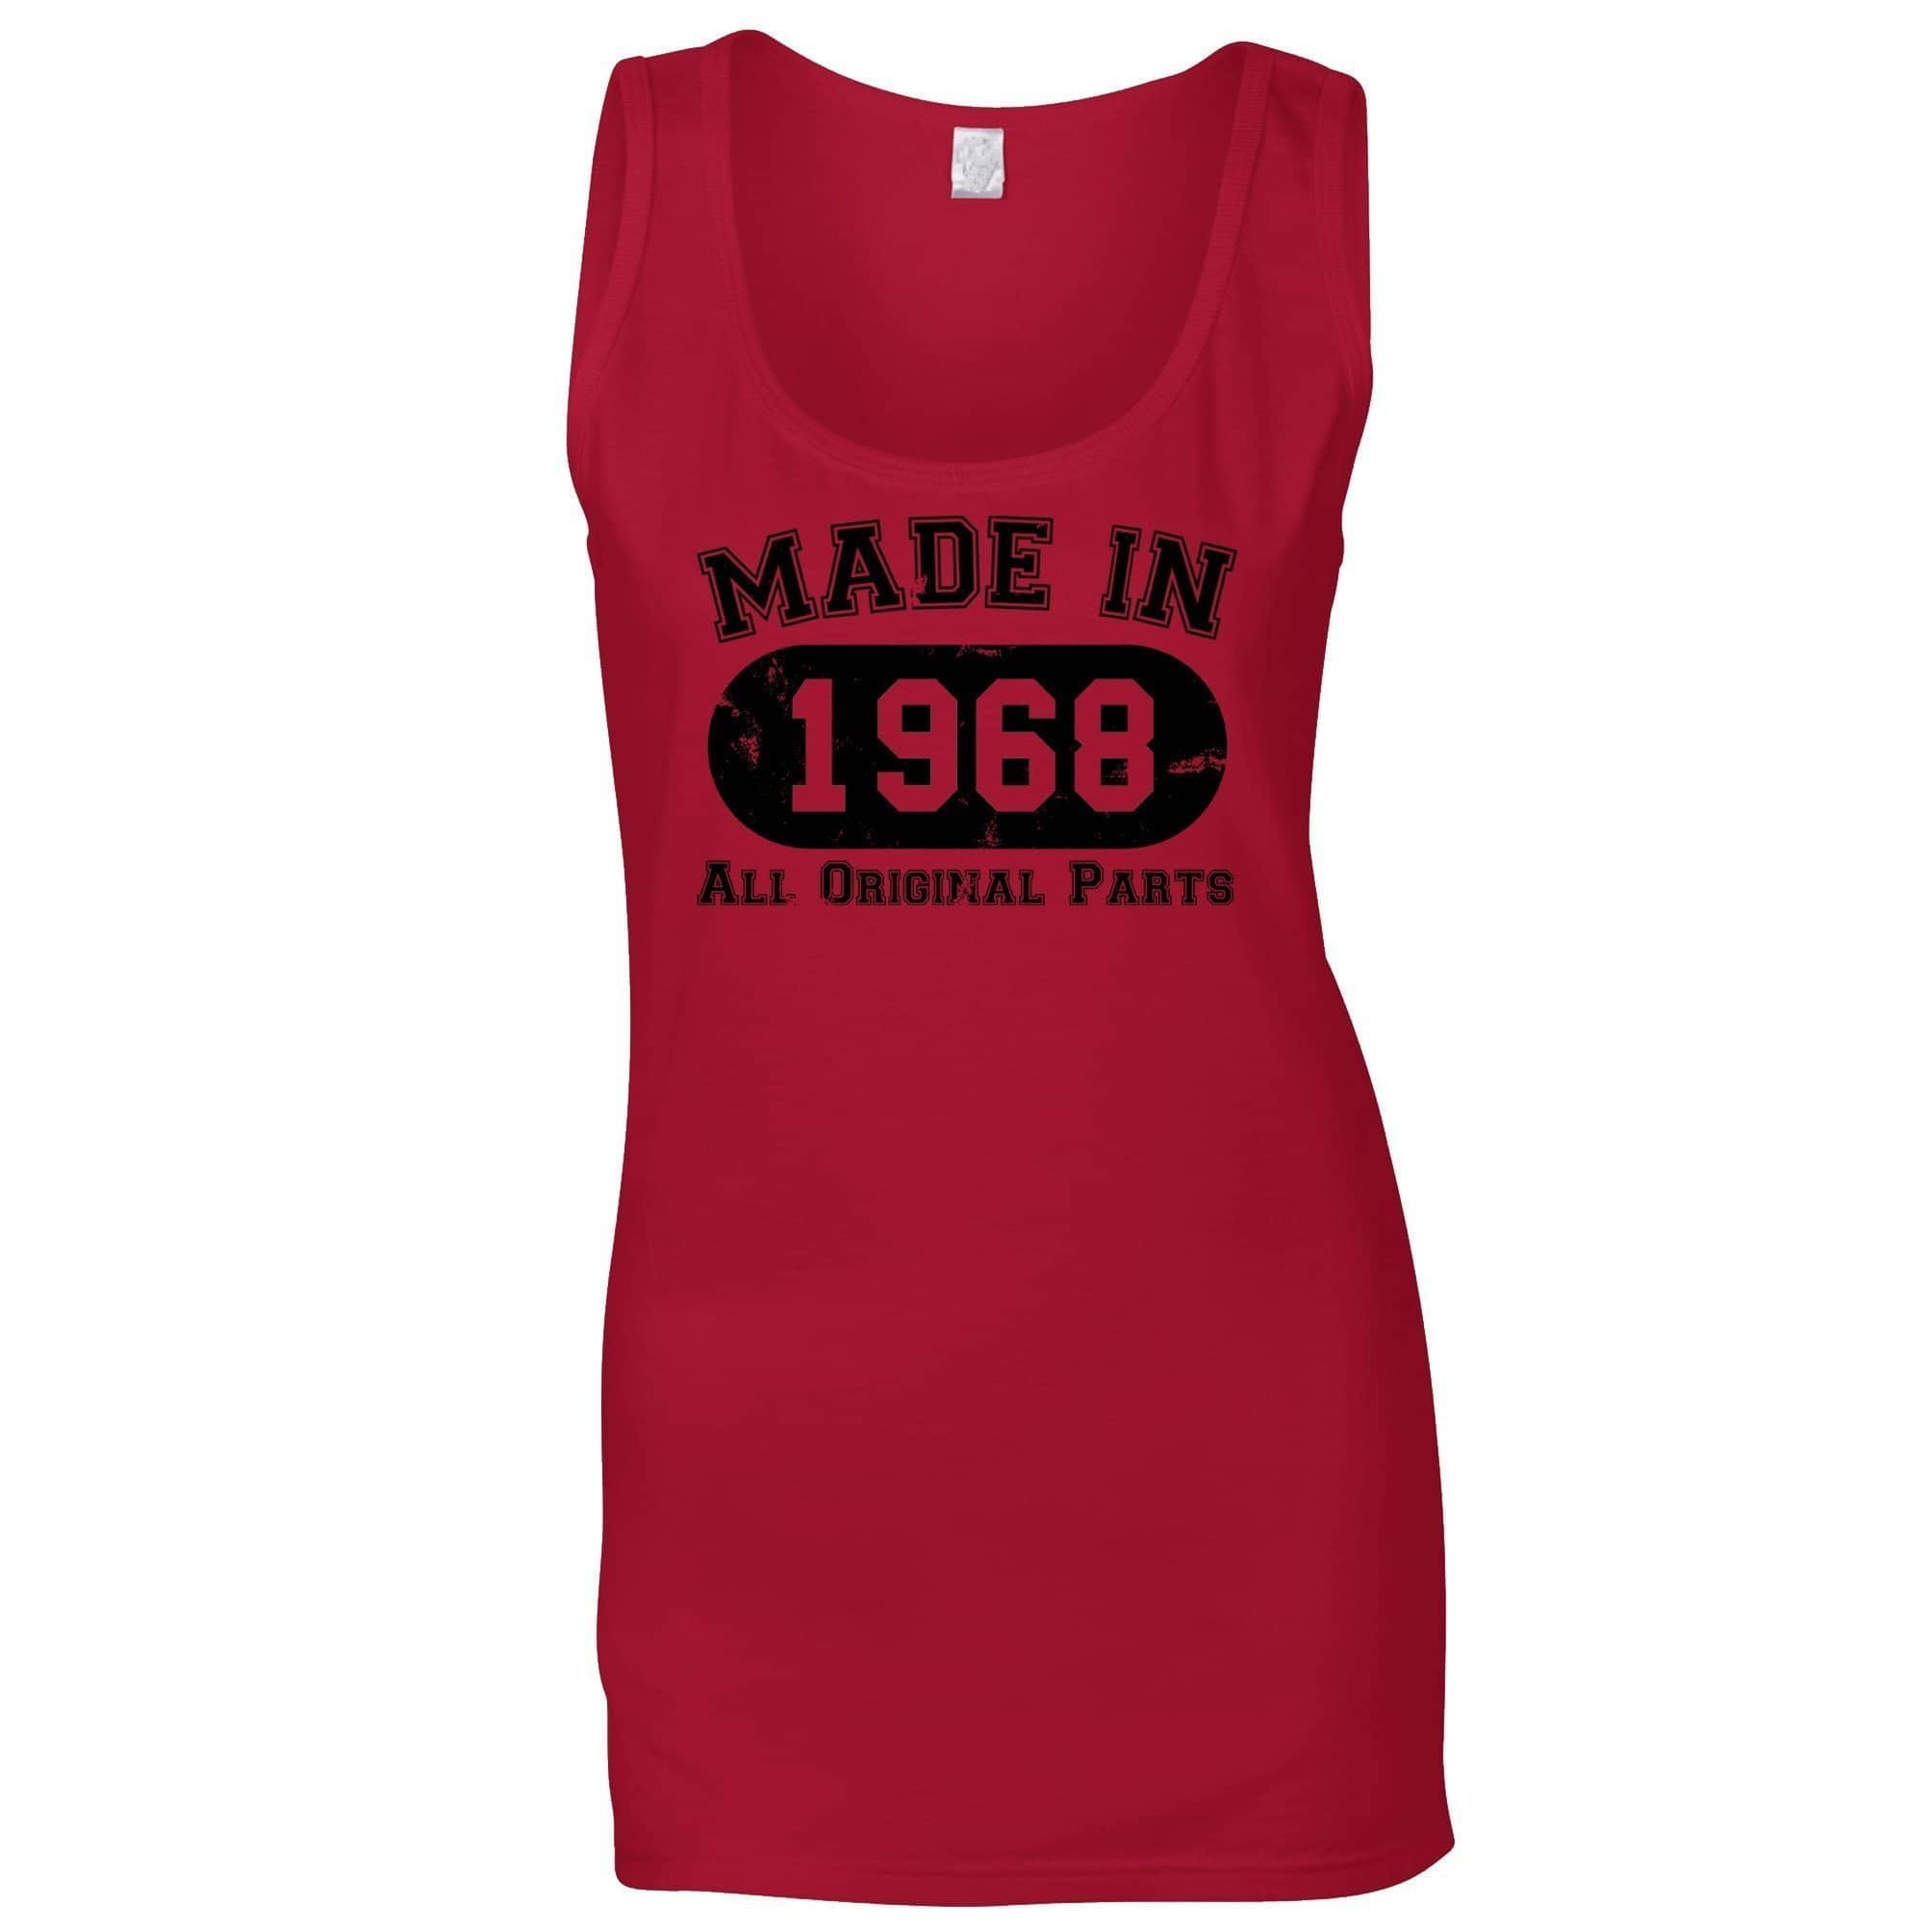 Made in 1968 All Original Parts Womens Vest [Distressed]